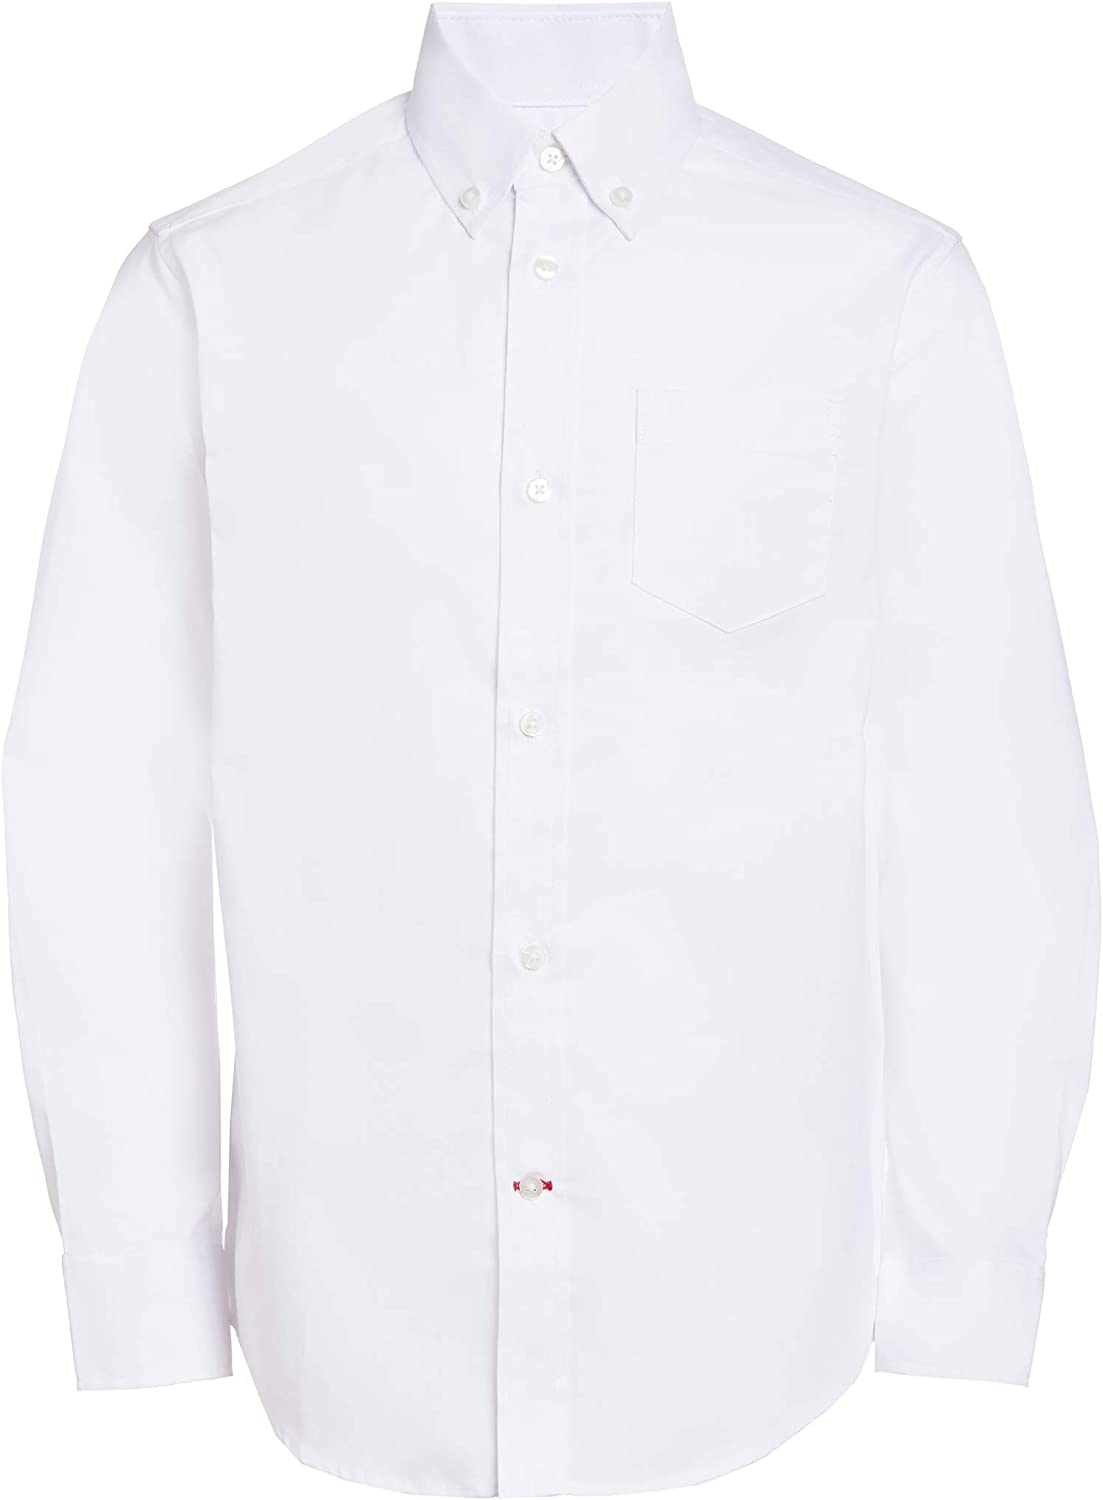 Tommy Hilfiger Boys Oxford Long Sleeve Dress Shirt, Collared Button-Down with Chest Pocket, Regular Fit: Clothing